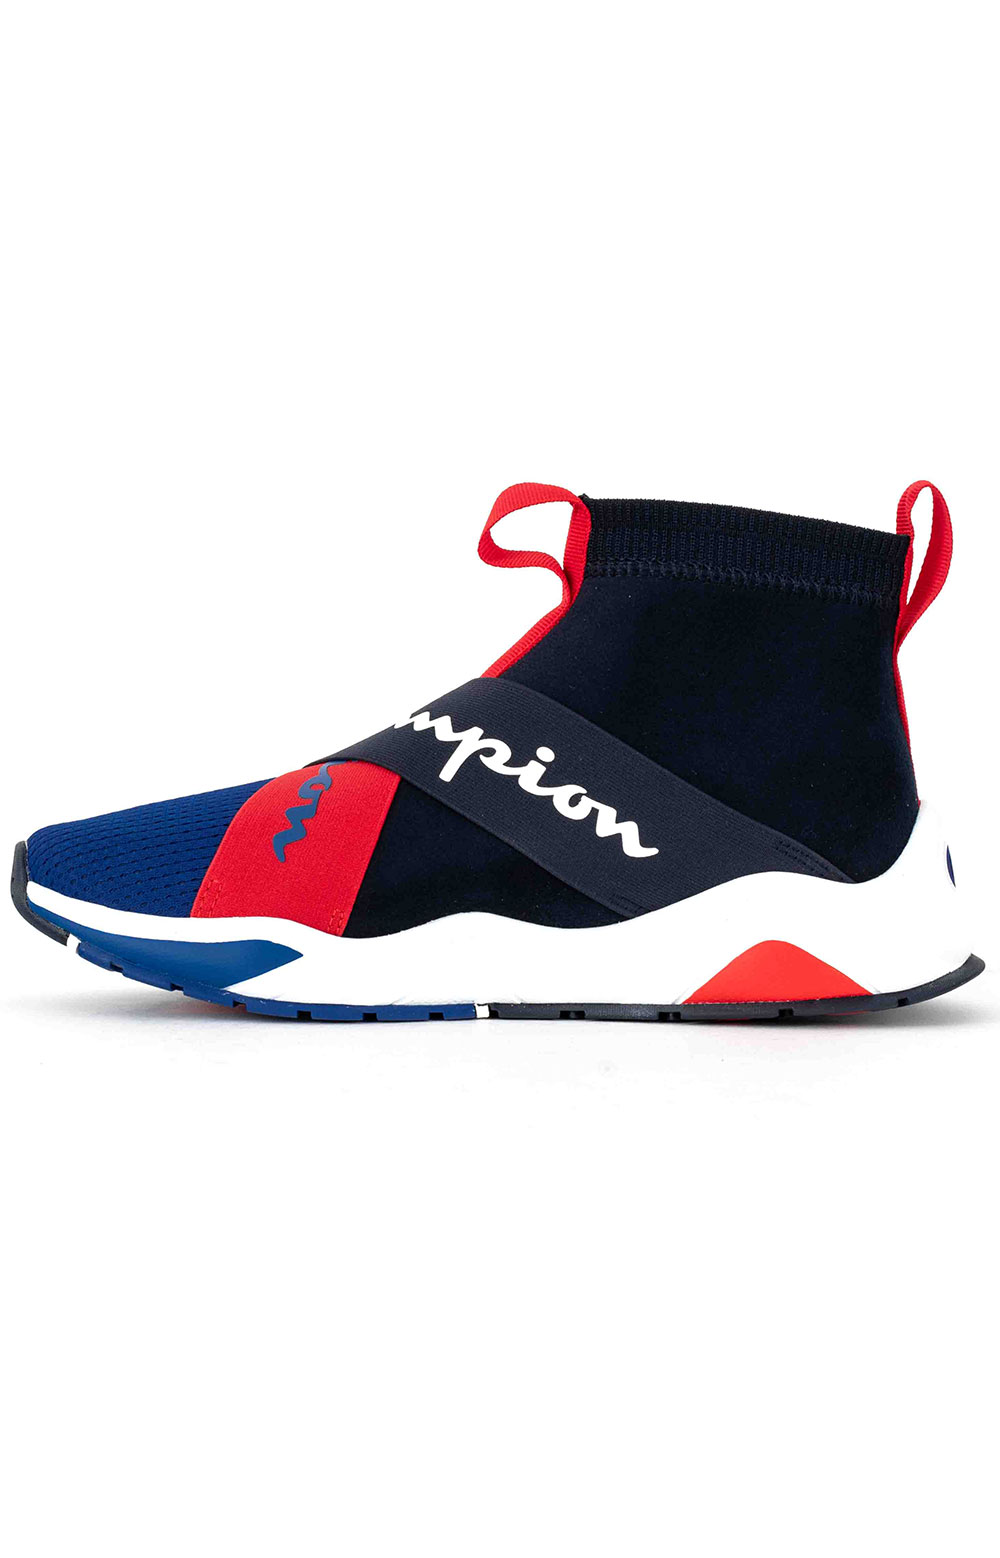 Rally Pro Shoes - Navy/Surf The Web 4